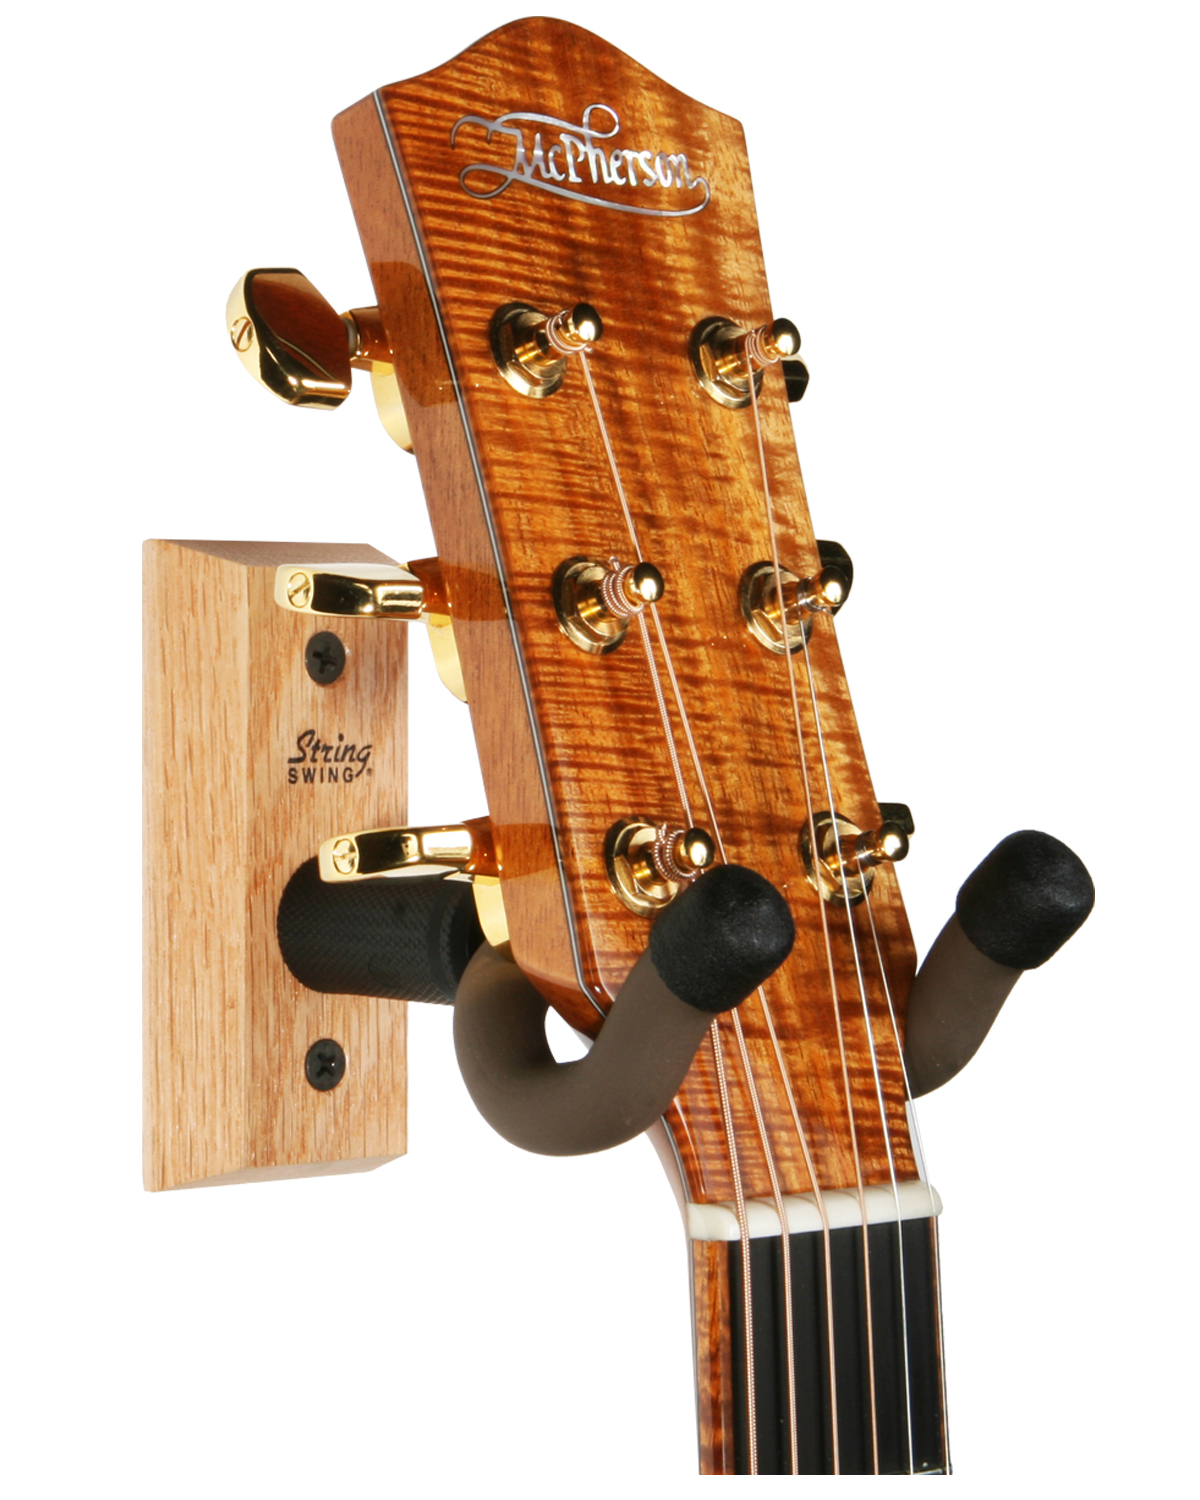 local music gear gear review the string swing hardwood home studio guitar hanger review. Black Bedroom Furniture Sets. Home Design Ideas